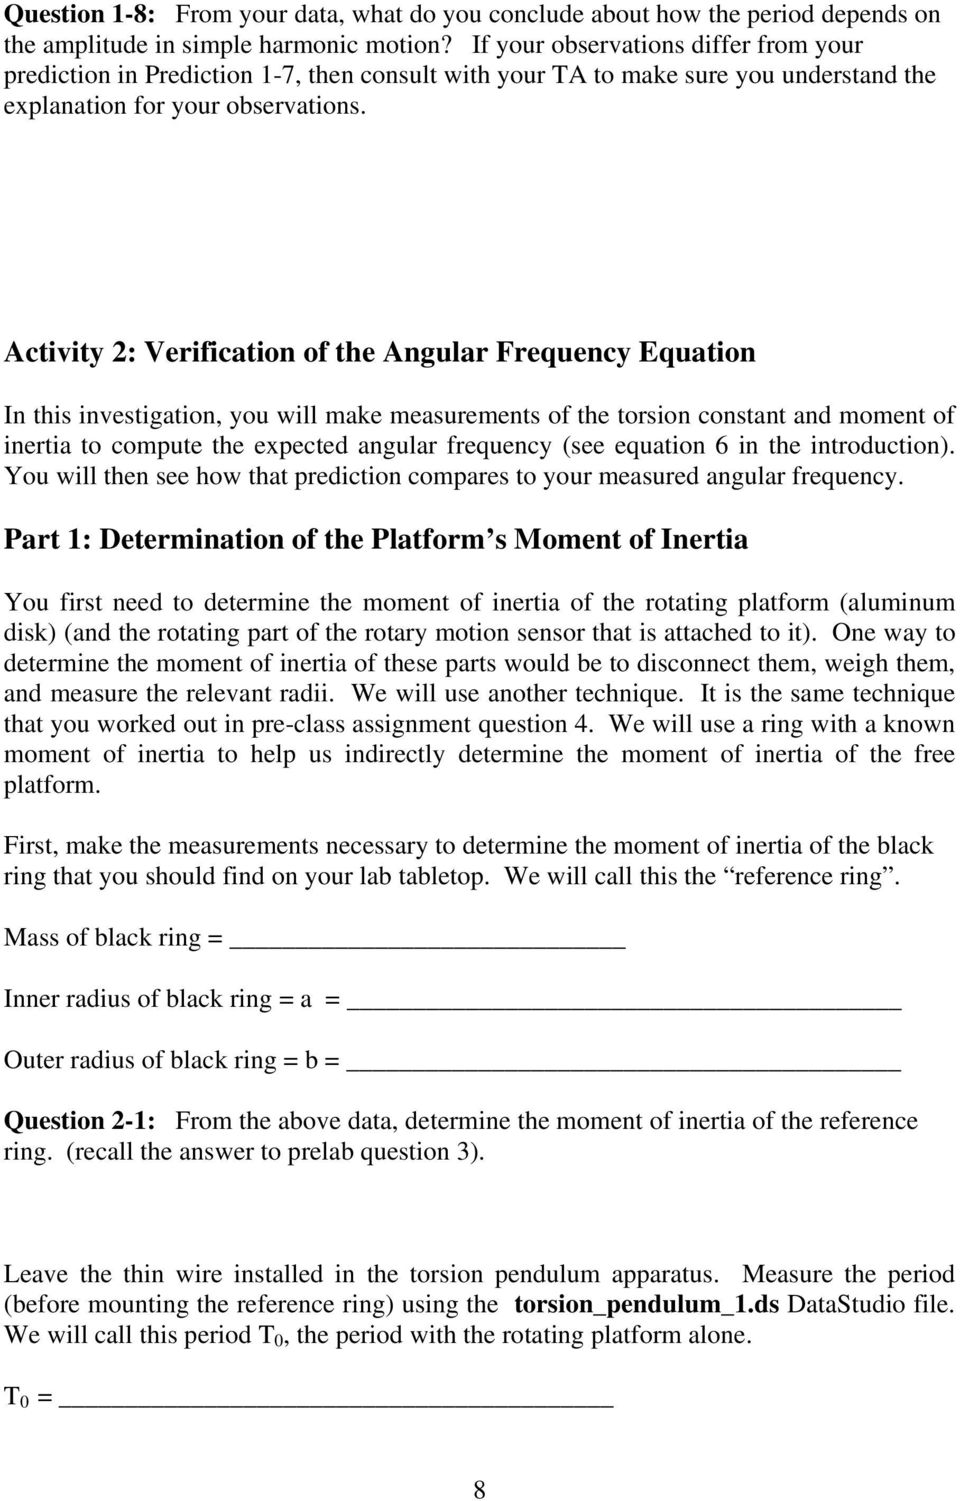 Activity 2: Verification of the Angular Frequency Equation In this investigation, you will make measurements of the torsion constant and moment of inertia to compute the expected angular frequency